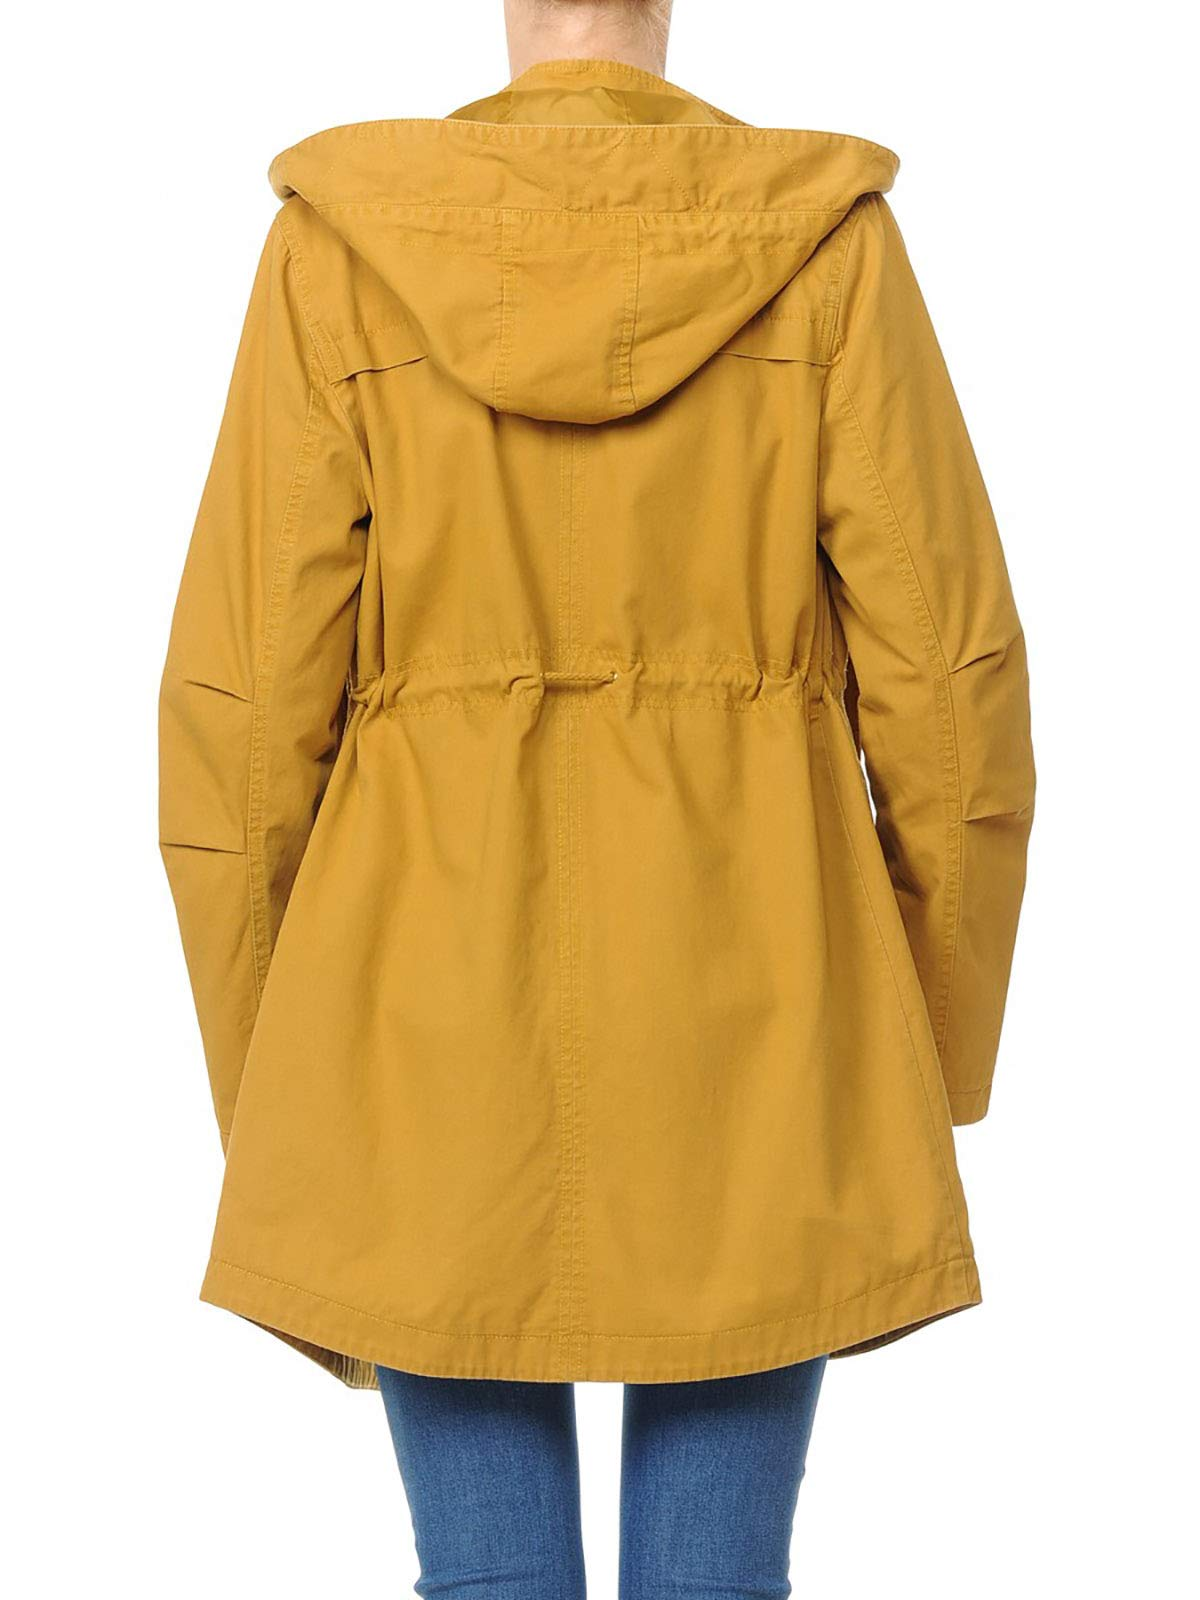 Instar Mode Women's Trendy Cotton Oversized Hooded Anorak Jacket Olive L by Instar Mode (Image #2)